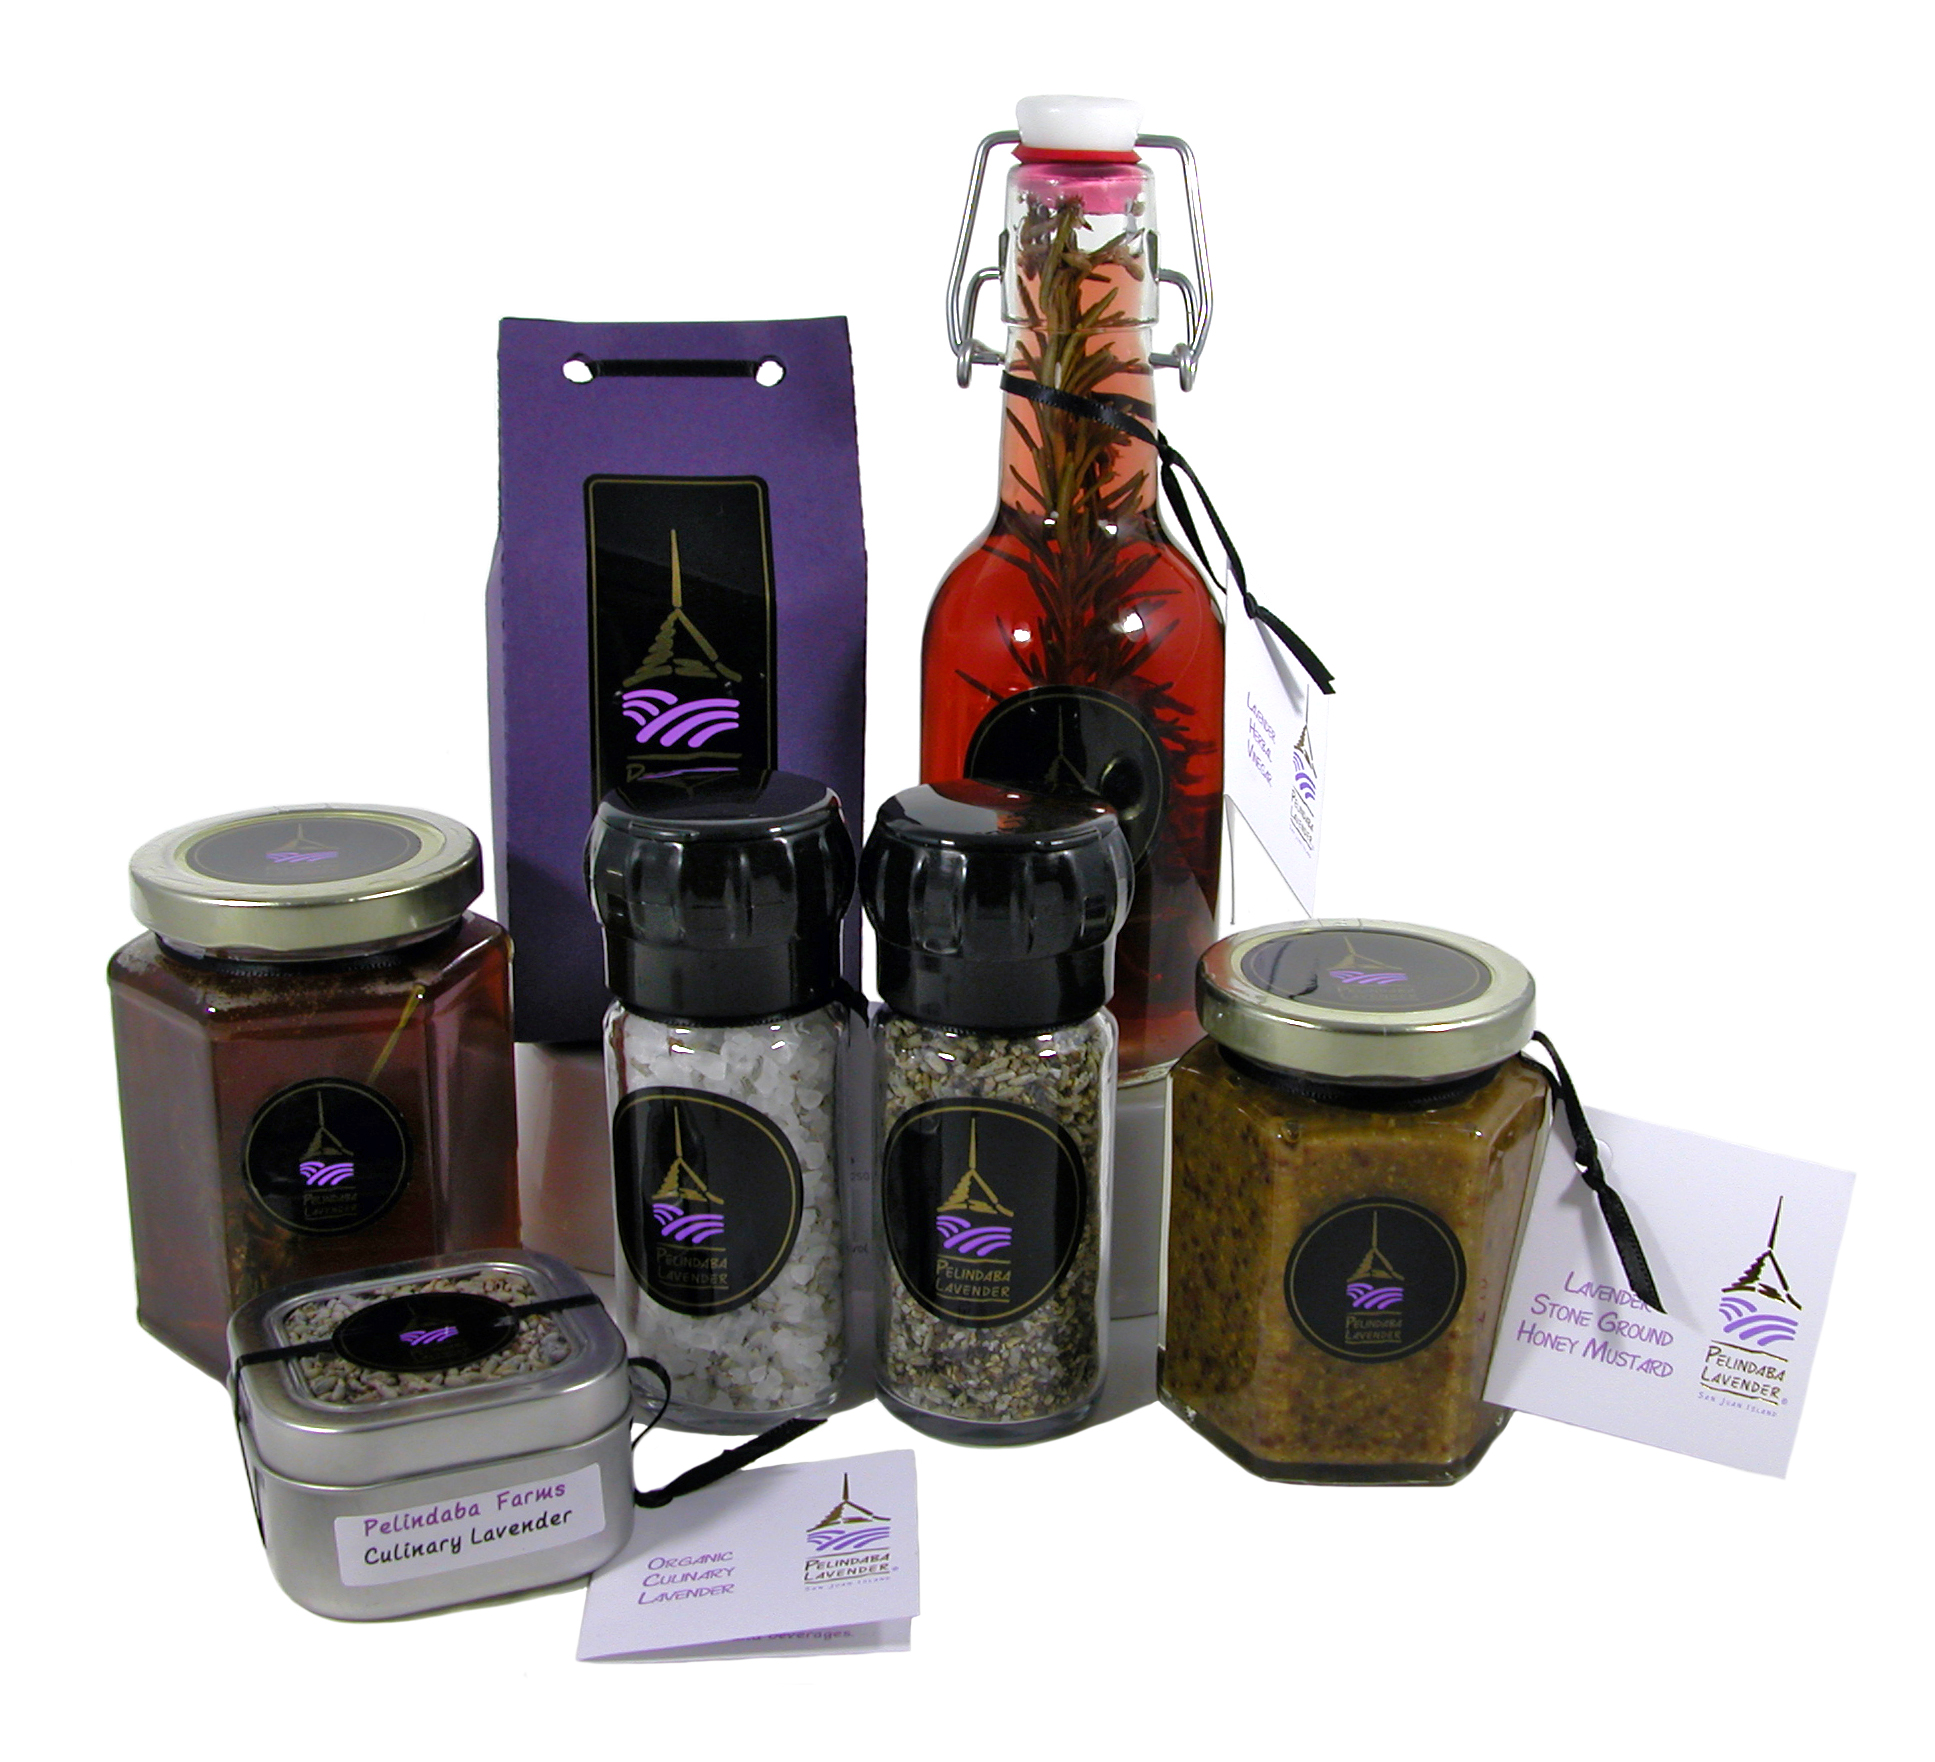 organic lavender culinary products from Pelindaba Lavender